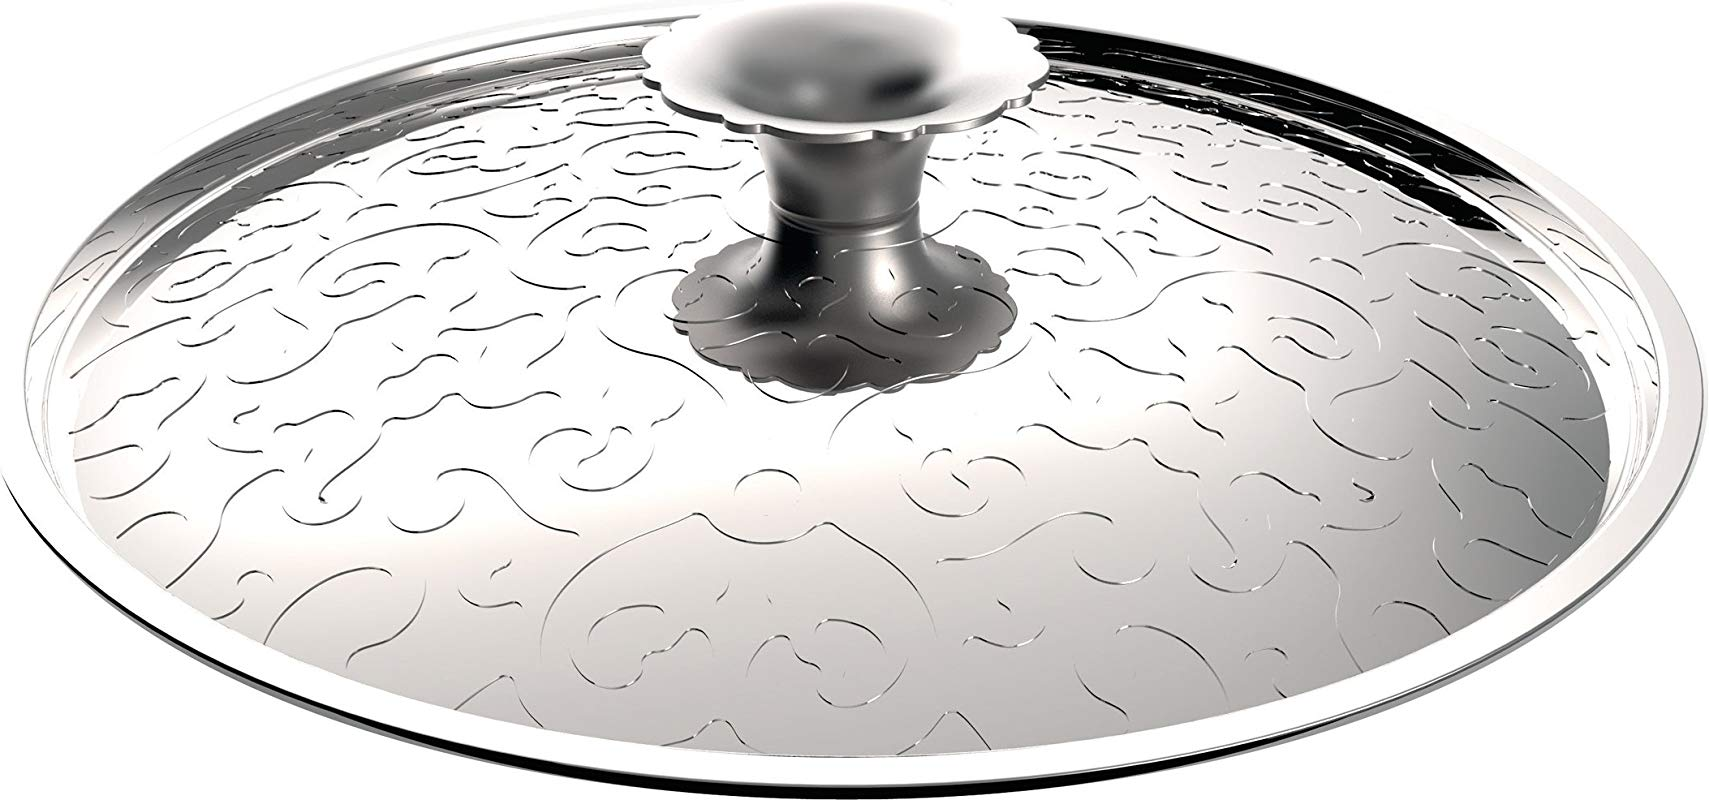 Alessi MW200 24 Dressed Lid In 18 10 Stainless Steel Mirror Polished With Relief Decoration Silver